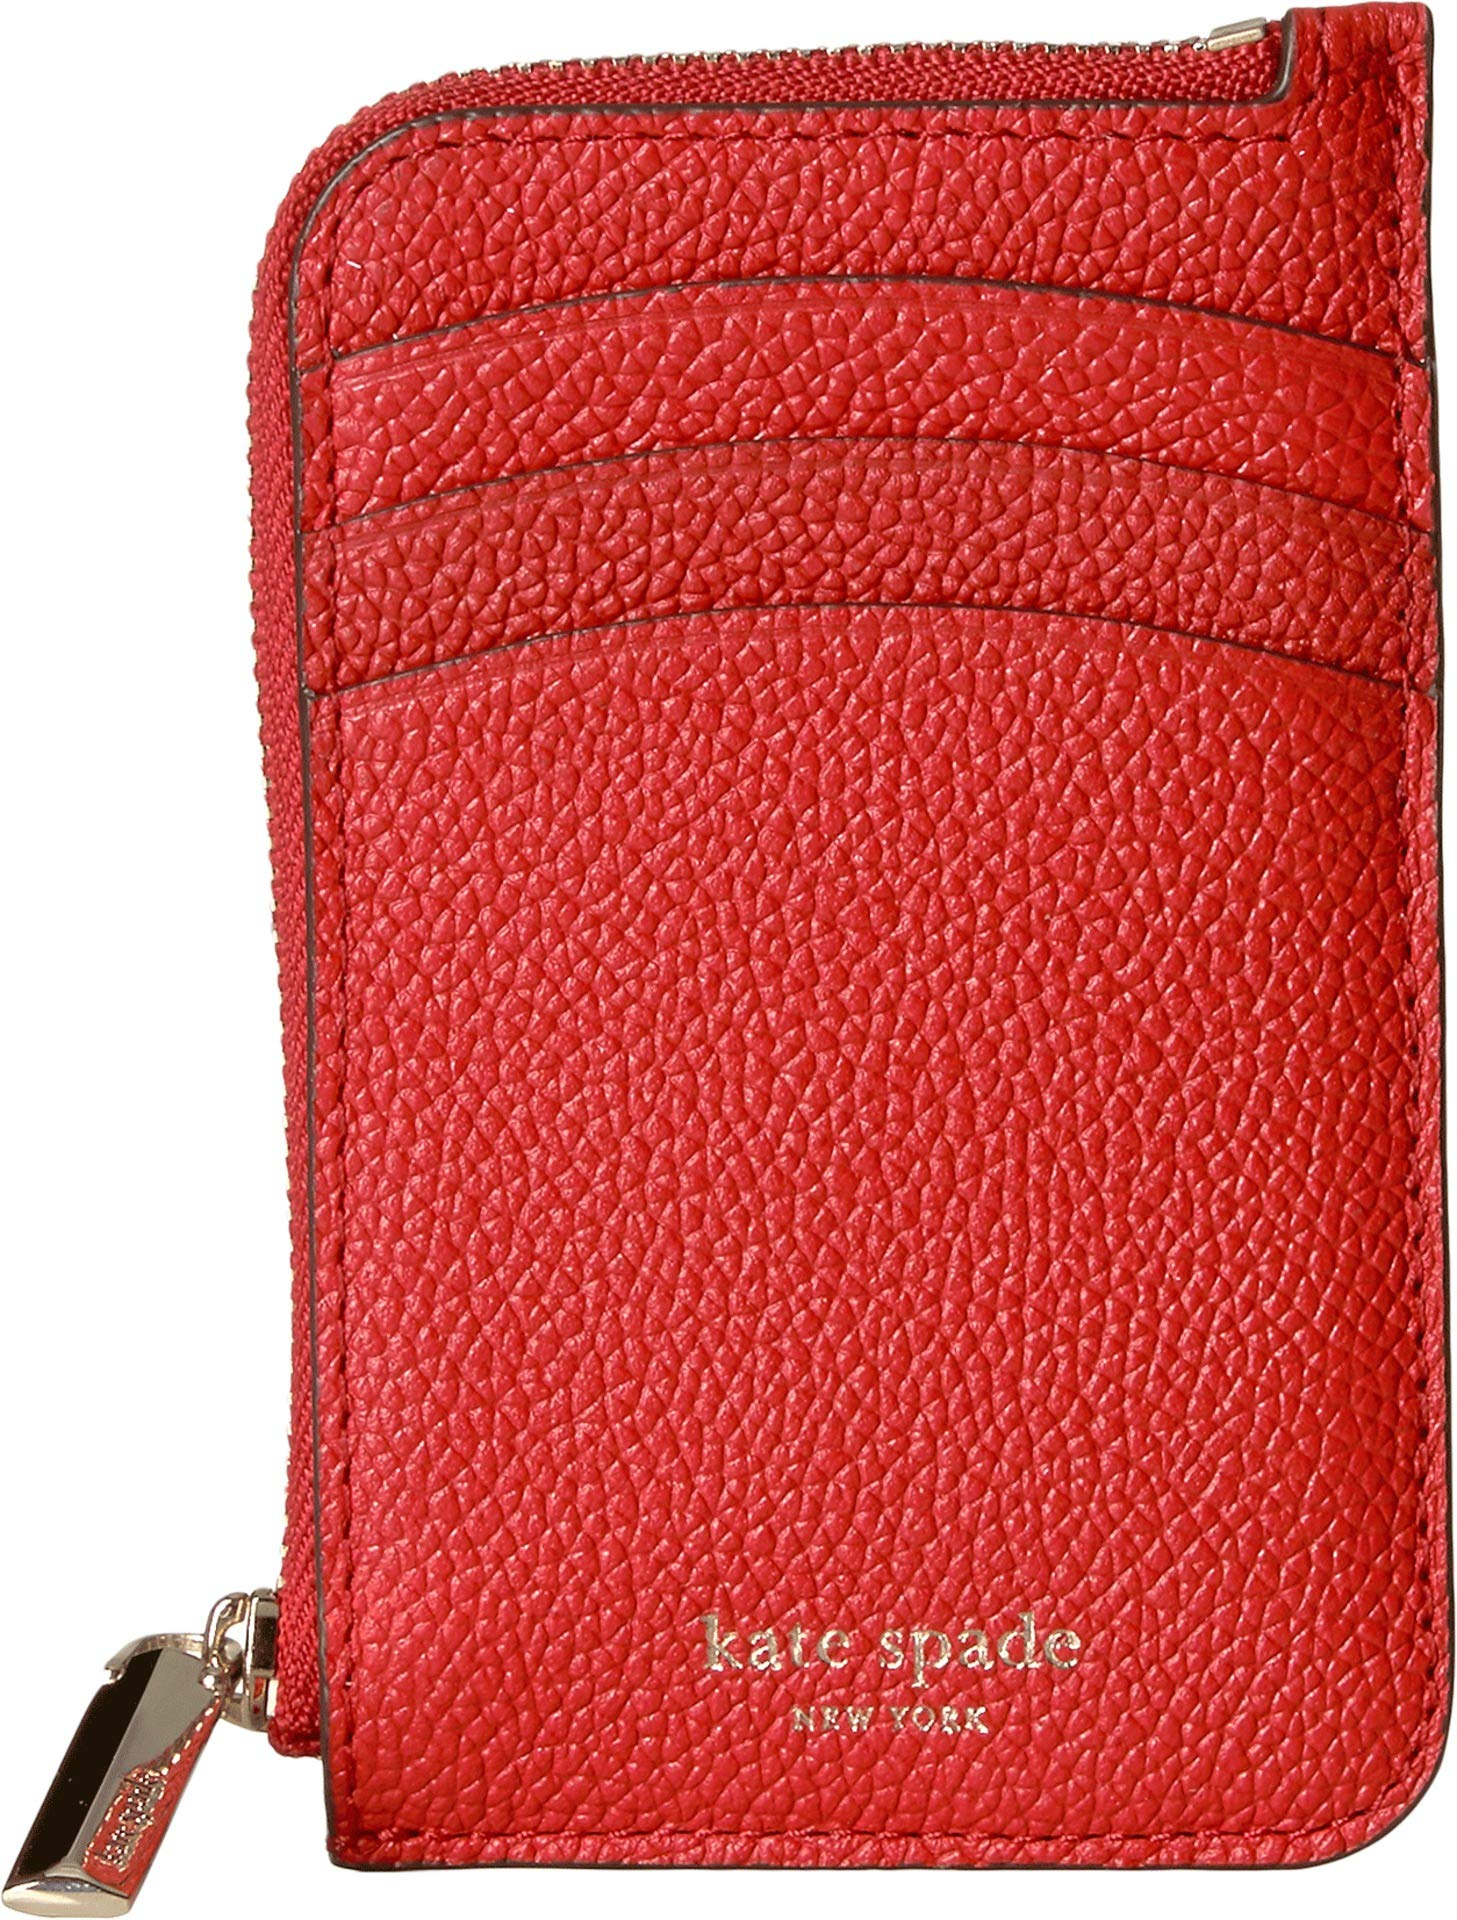 Kate Spade New York Women's Margaux Zip Card Holder Hot Chili One Size